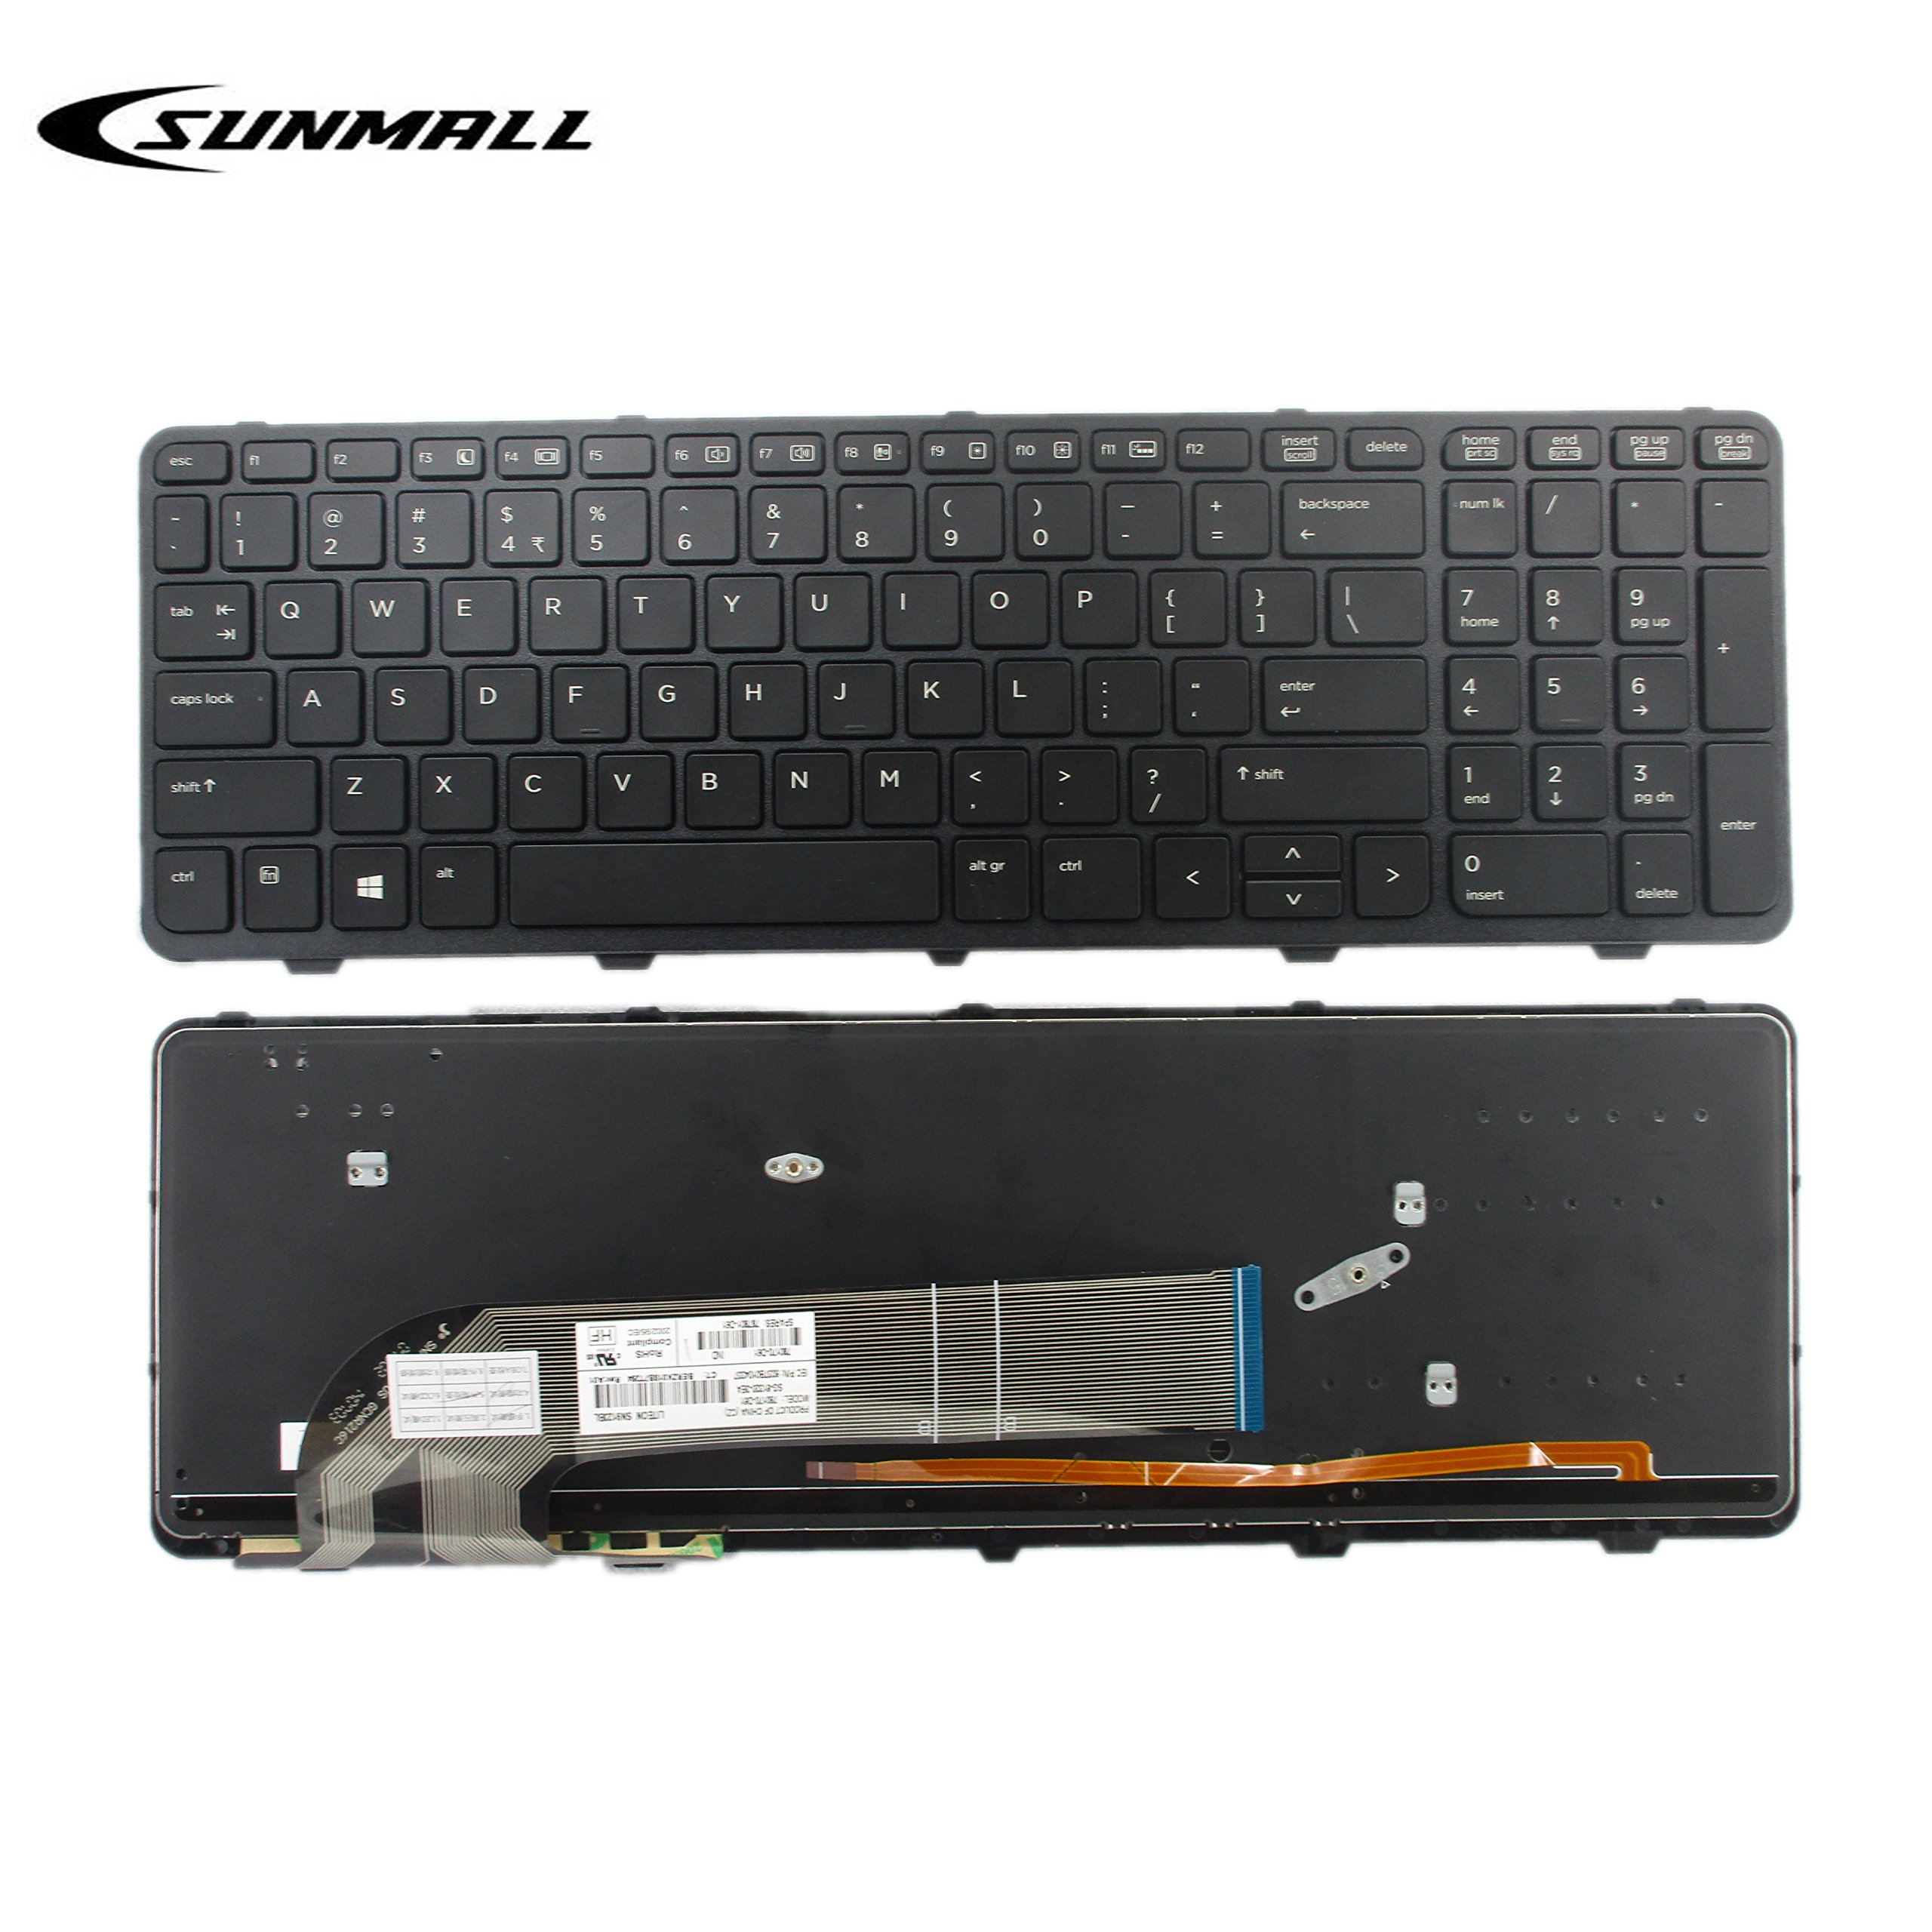 SUNMALL New Laptop Keyboard replacement with FRAME and Backlit for HP Probook 450 G0 450 G1 Series Black US Layout(6 Months Warranty)